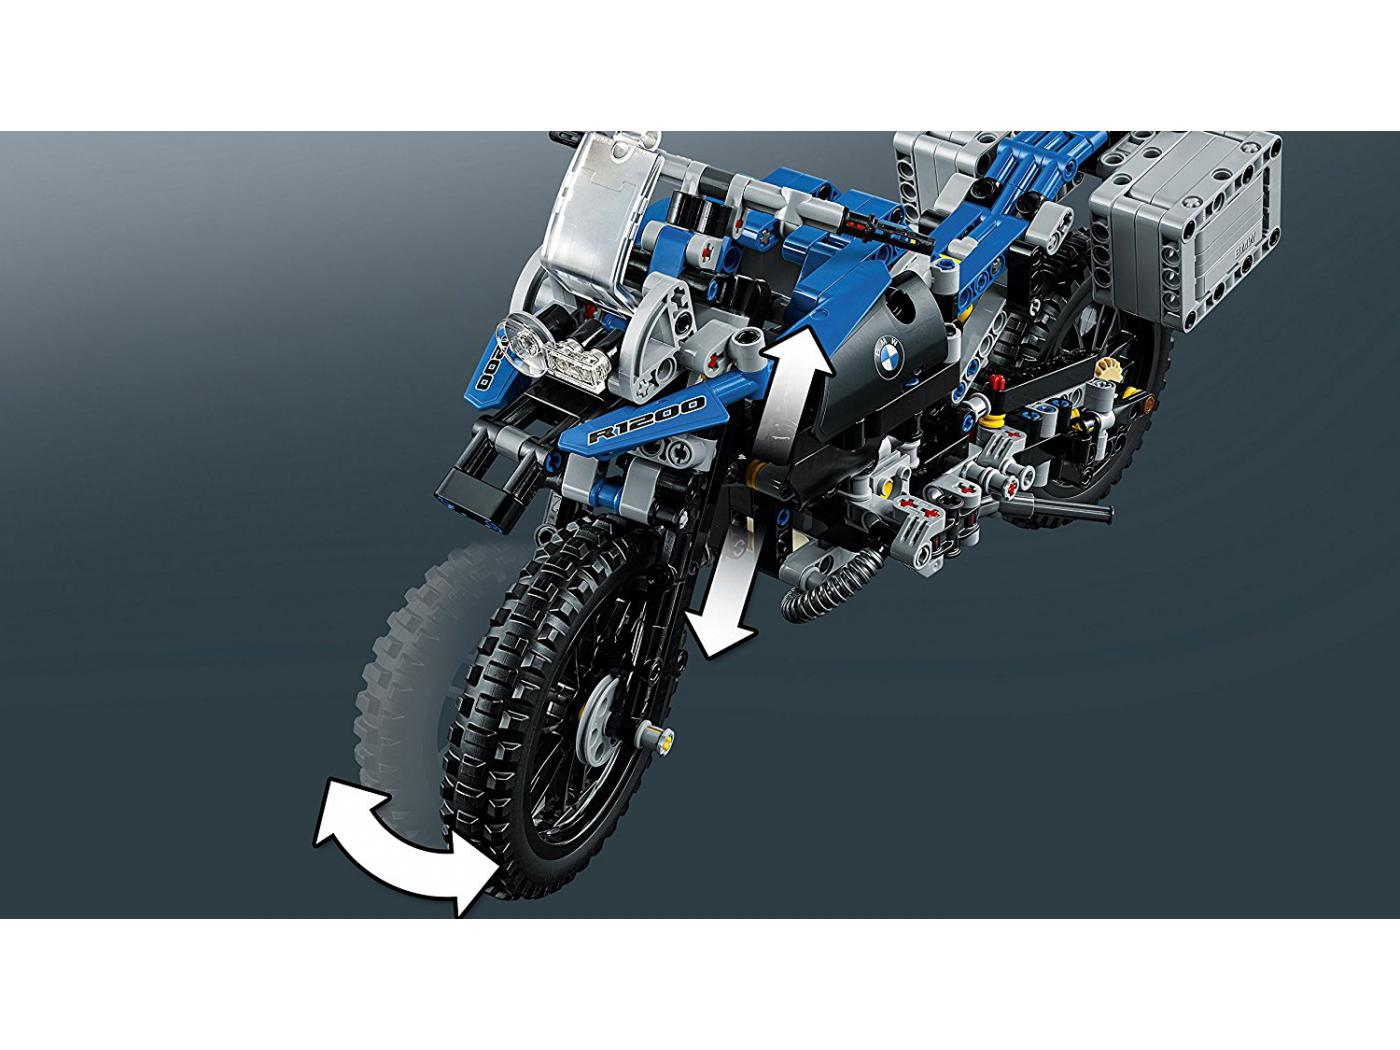 lego bmw r 1200 gs adventure. Black Bedroom Furniture Sets. Home Design Ideas